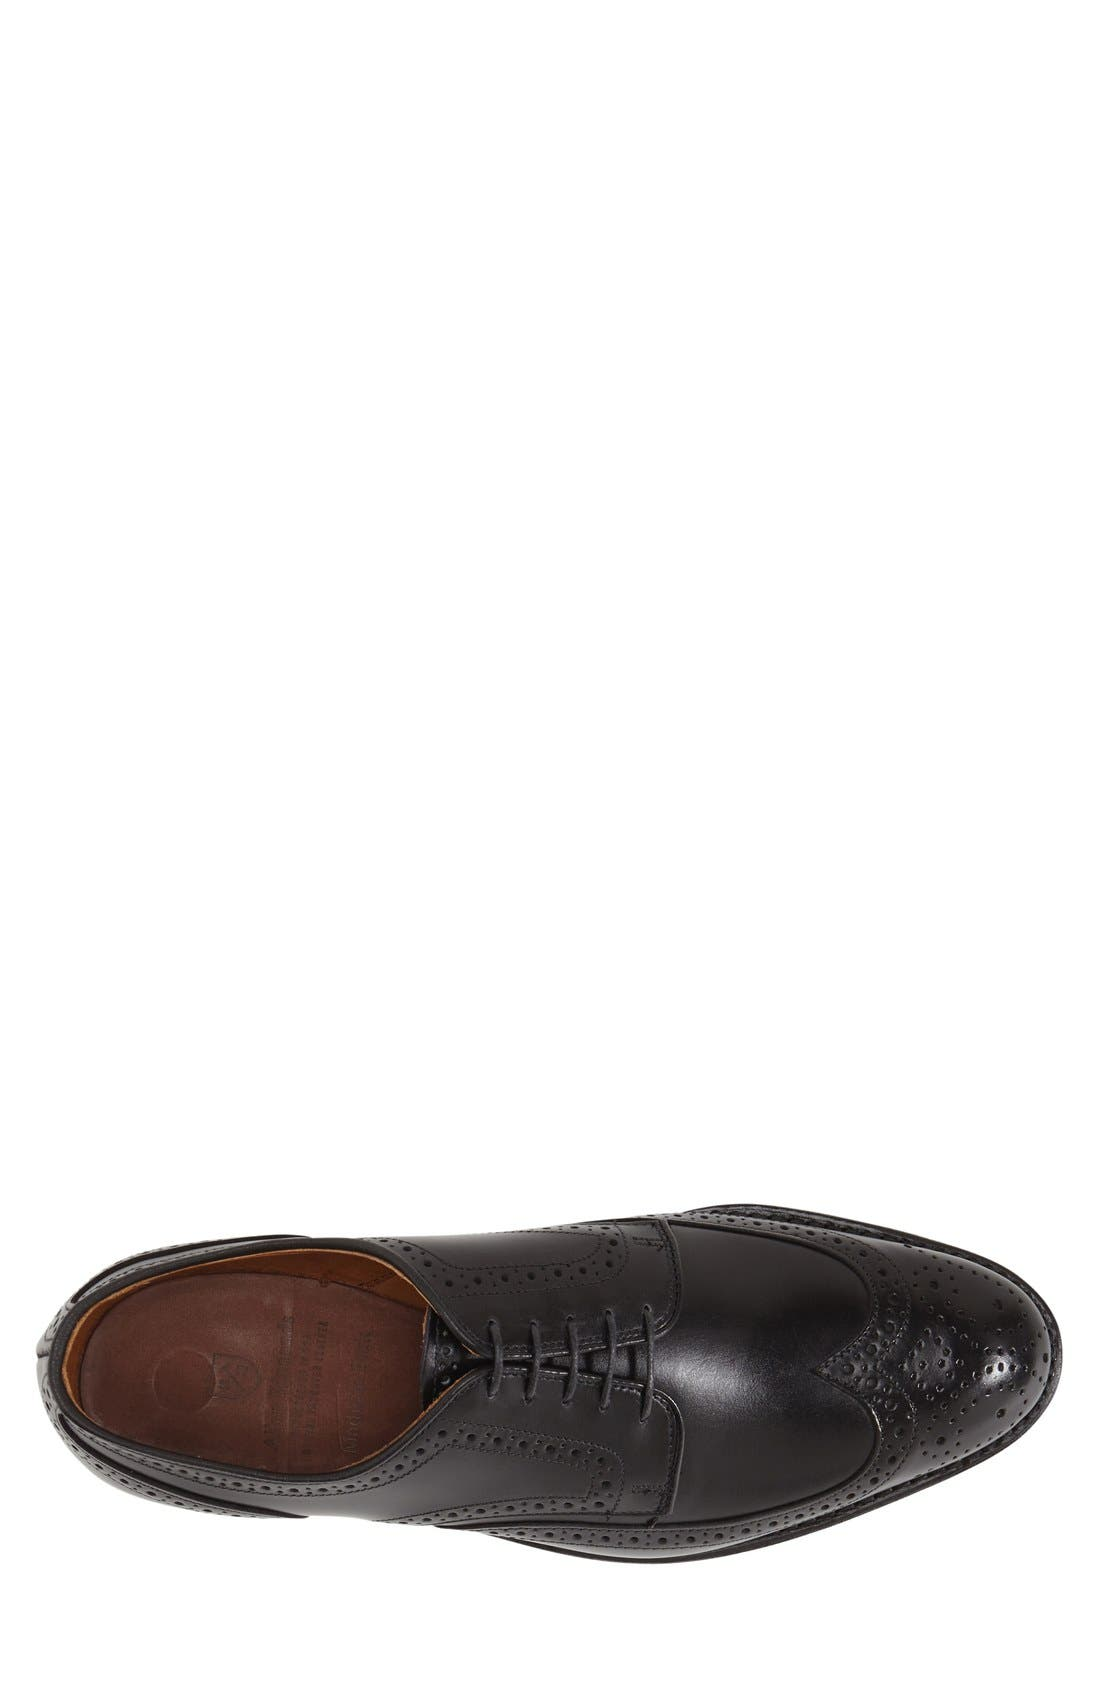 'Madison Park' Wingtip,                             Alternate thumbnail 3, color,                             Black Leather